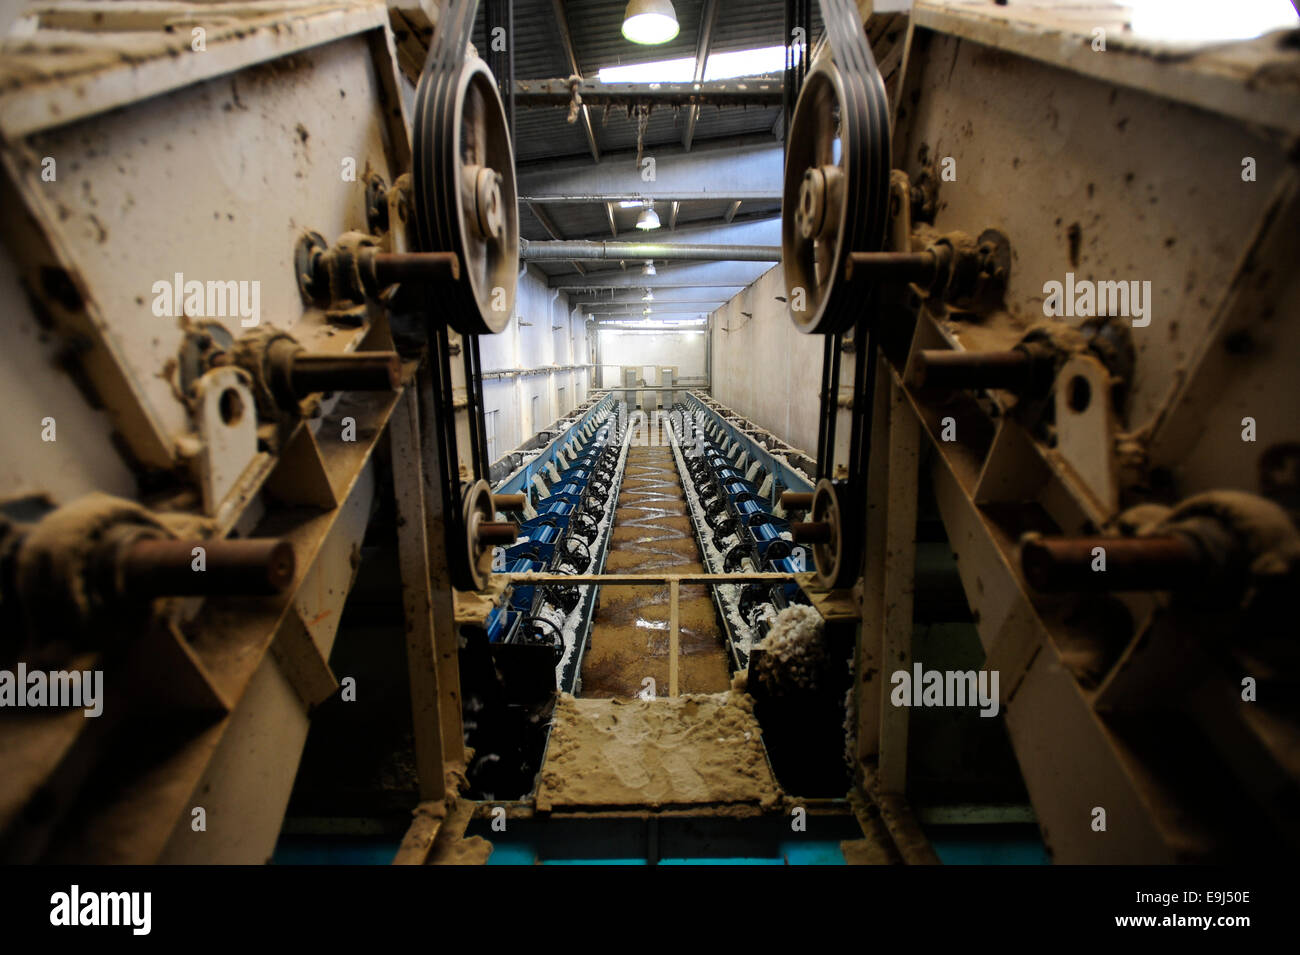 TURKEY, Menemen, ginning factory, processing of harvested conventional cotton, seperating of fibre and seed by machine - Stock Image